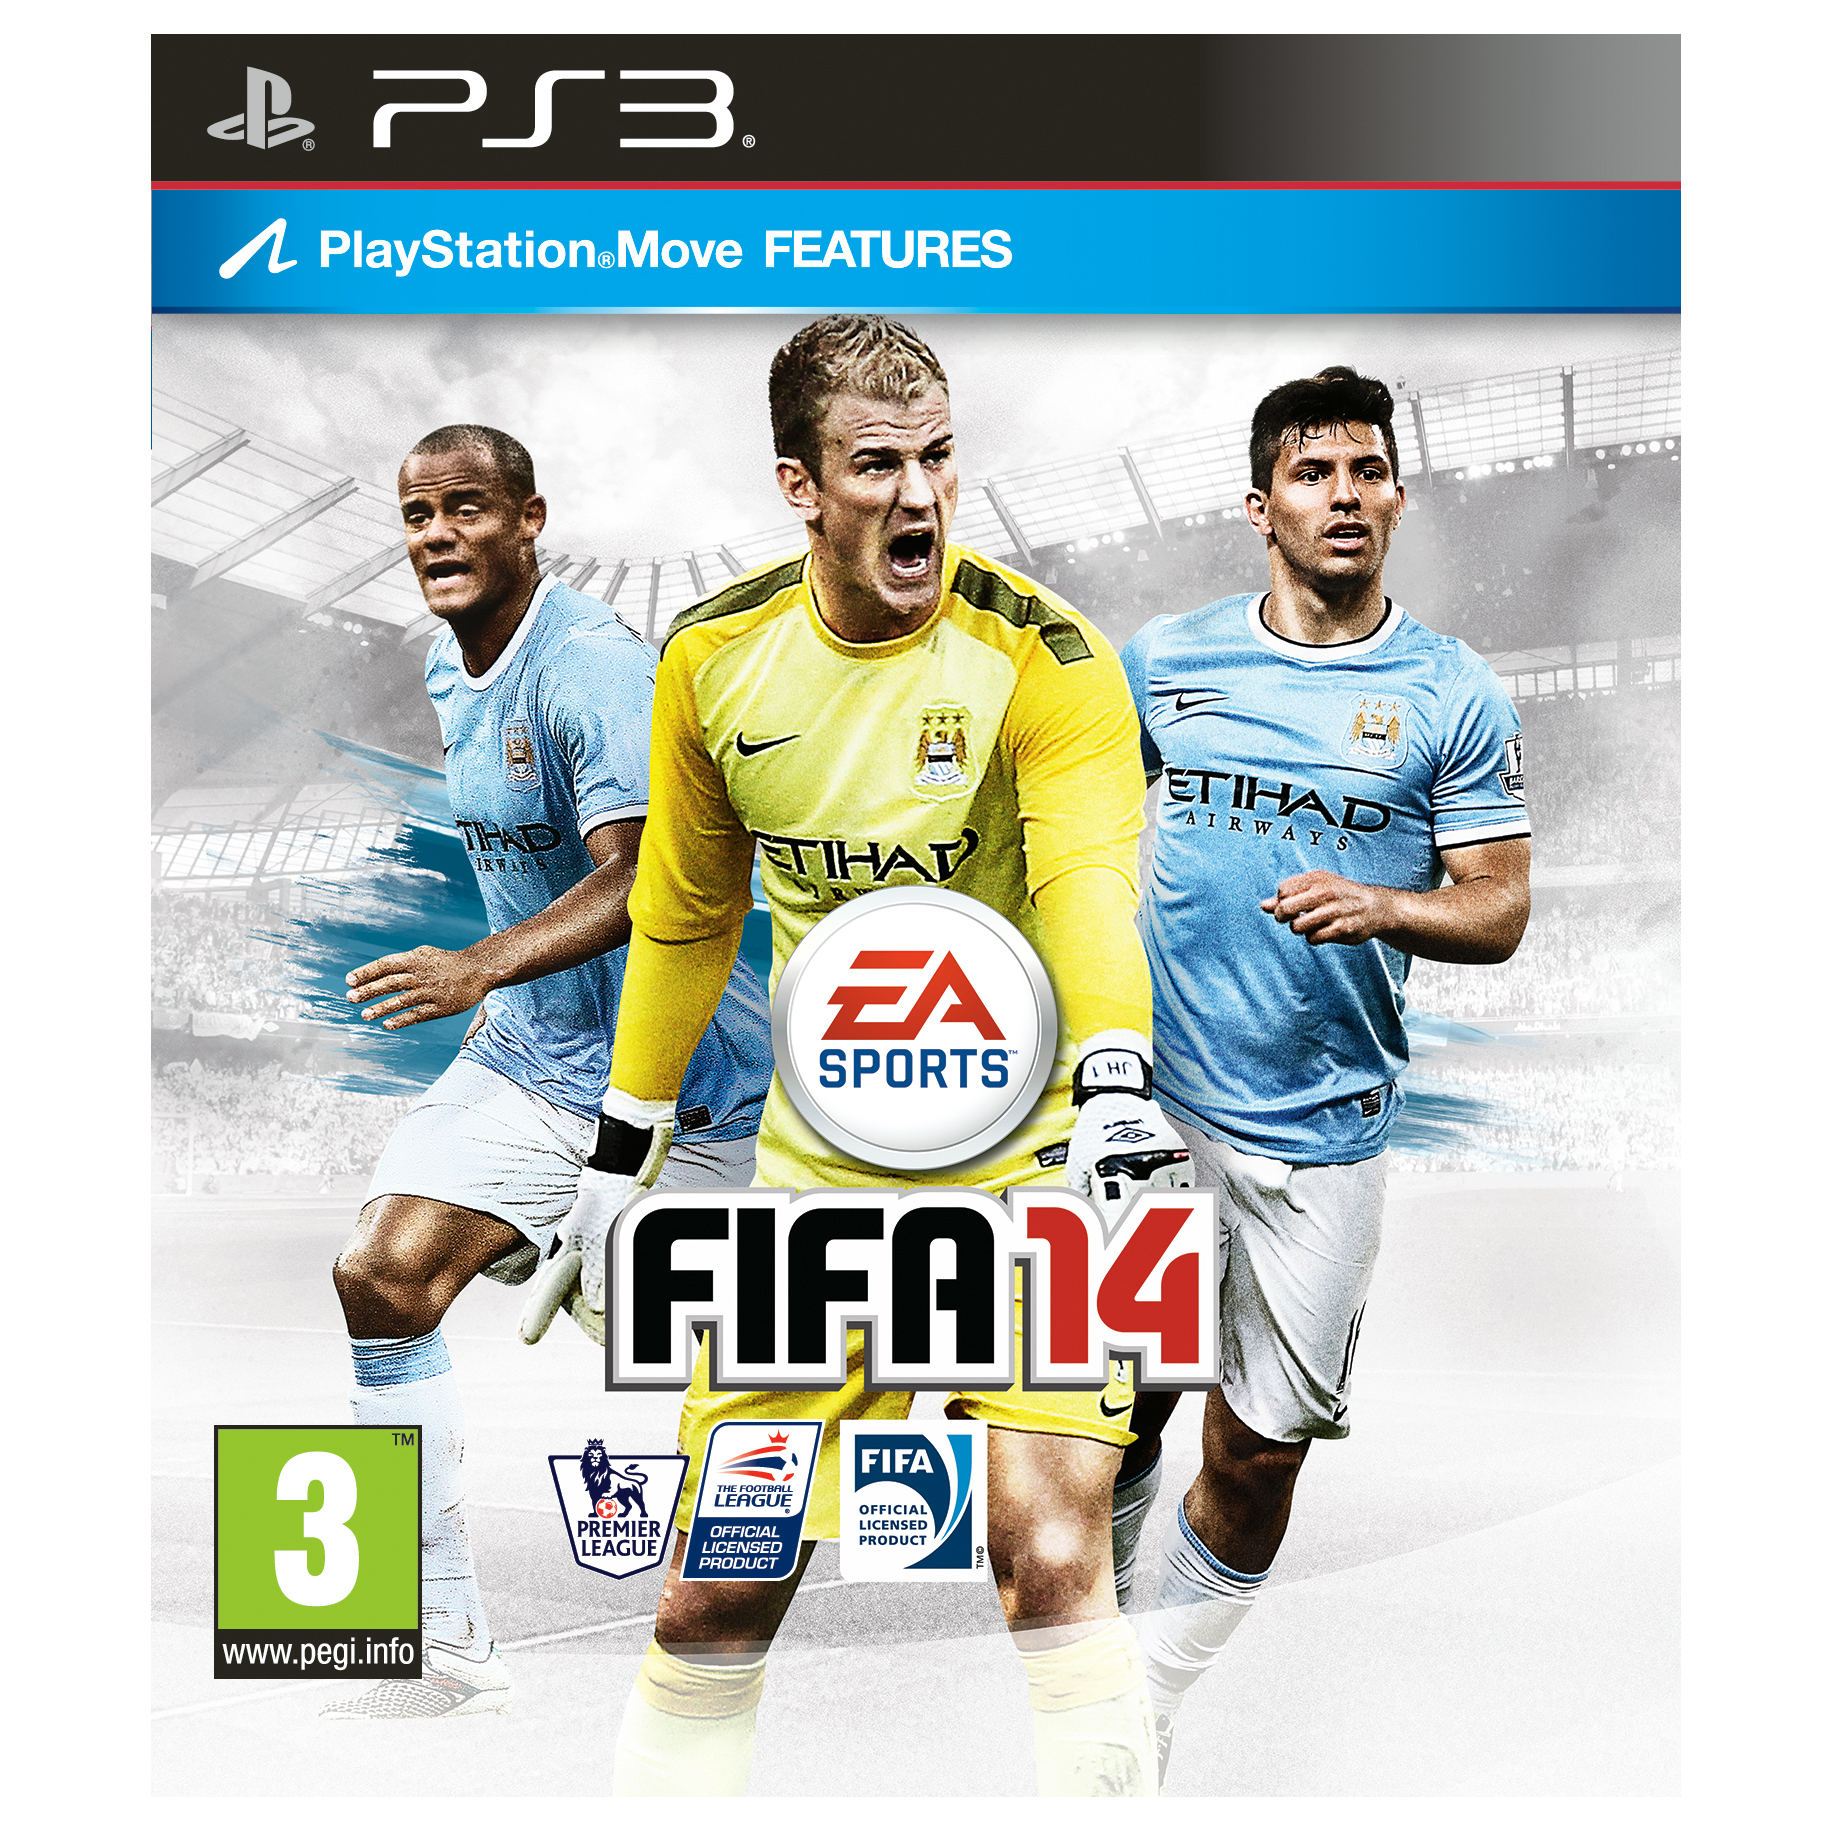 Manchester City Fifa 14 PS3 Game - MCFC Exclusive Cover